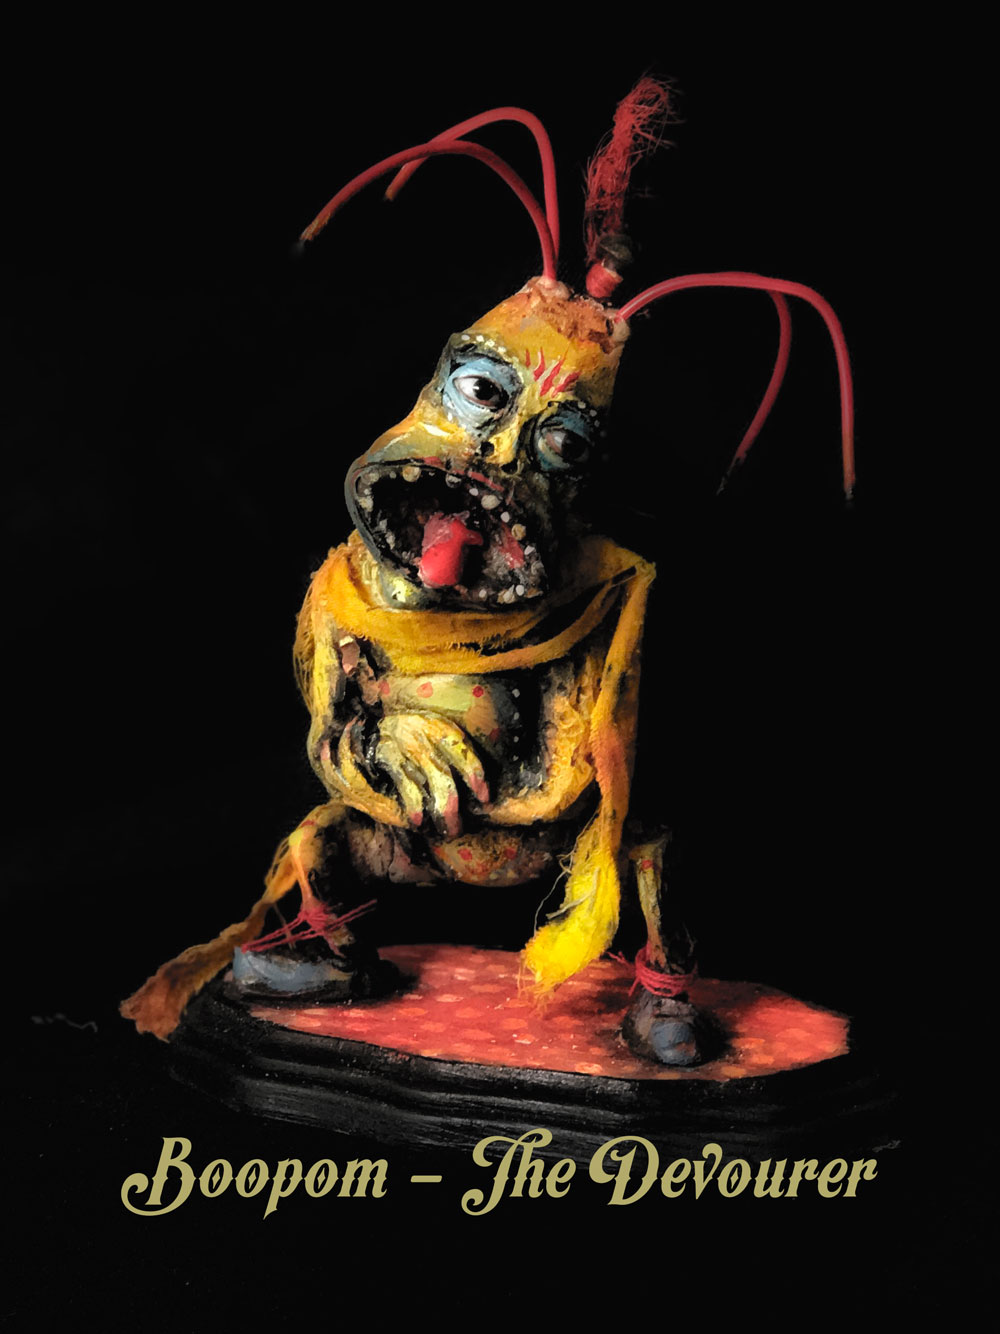 Boopom - the Devourer